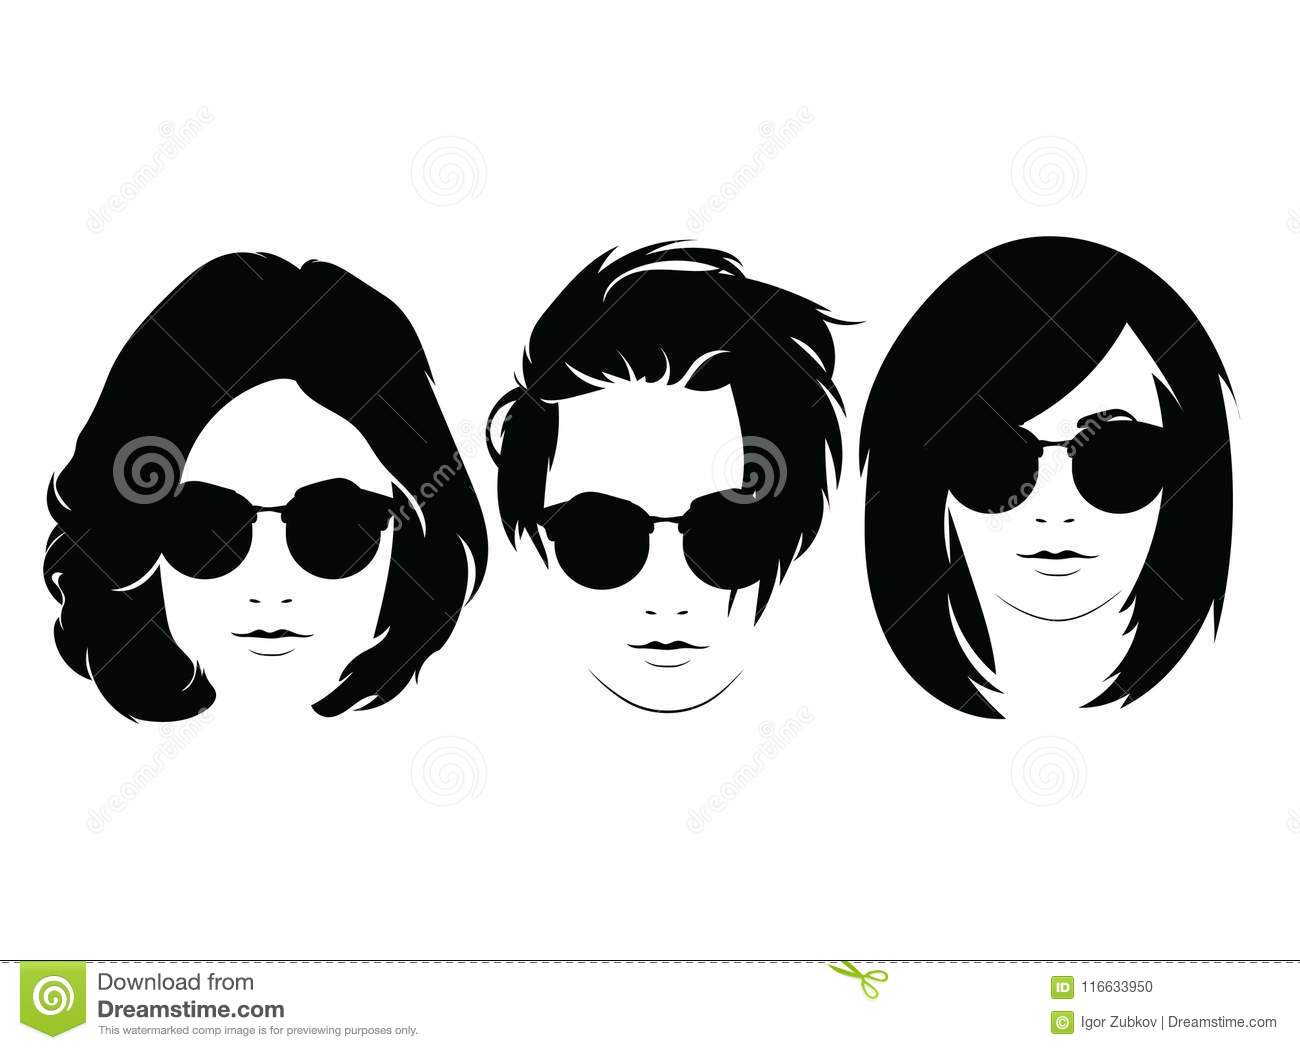 c0d6c8b12f Set of hairstyles for women with glasses. Collection of silhouettes of  hairstyles for girls for